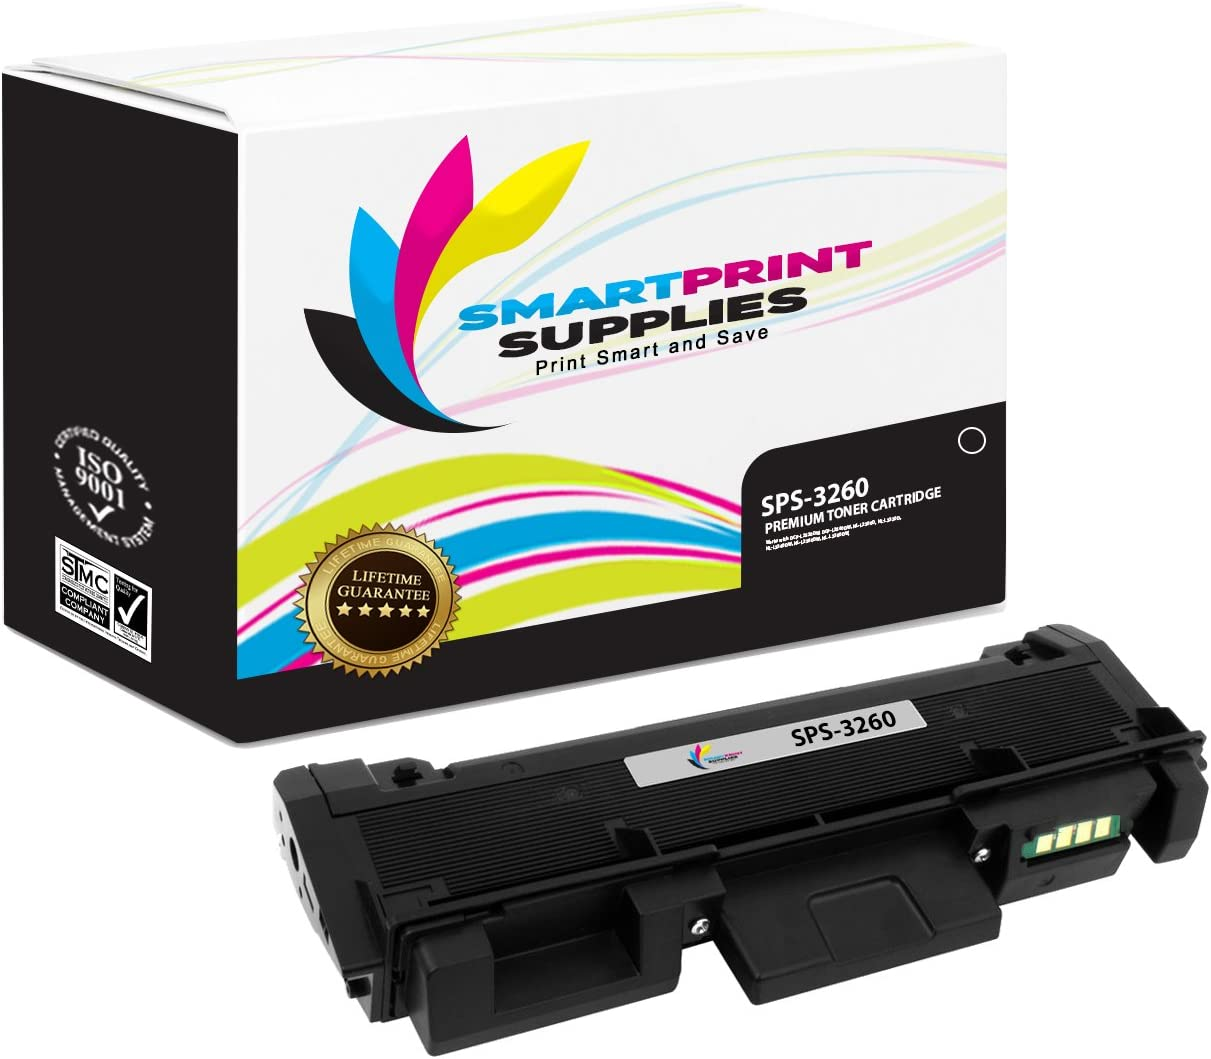 Workcentre 3215 3225 Printers 3,000 Pages Smart Print Supplies Compatible 106R02777 Black Toner Cartridge Replacement for Xerox Phaser 3260